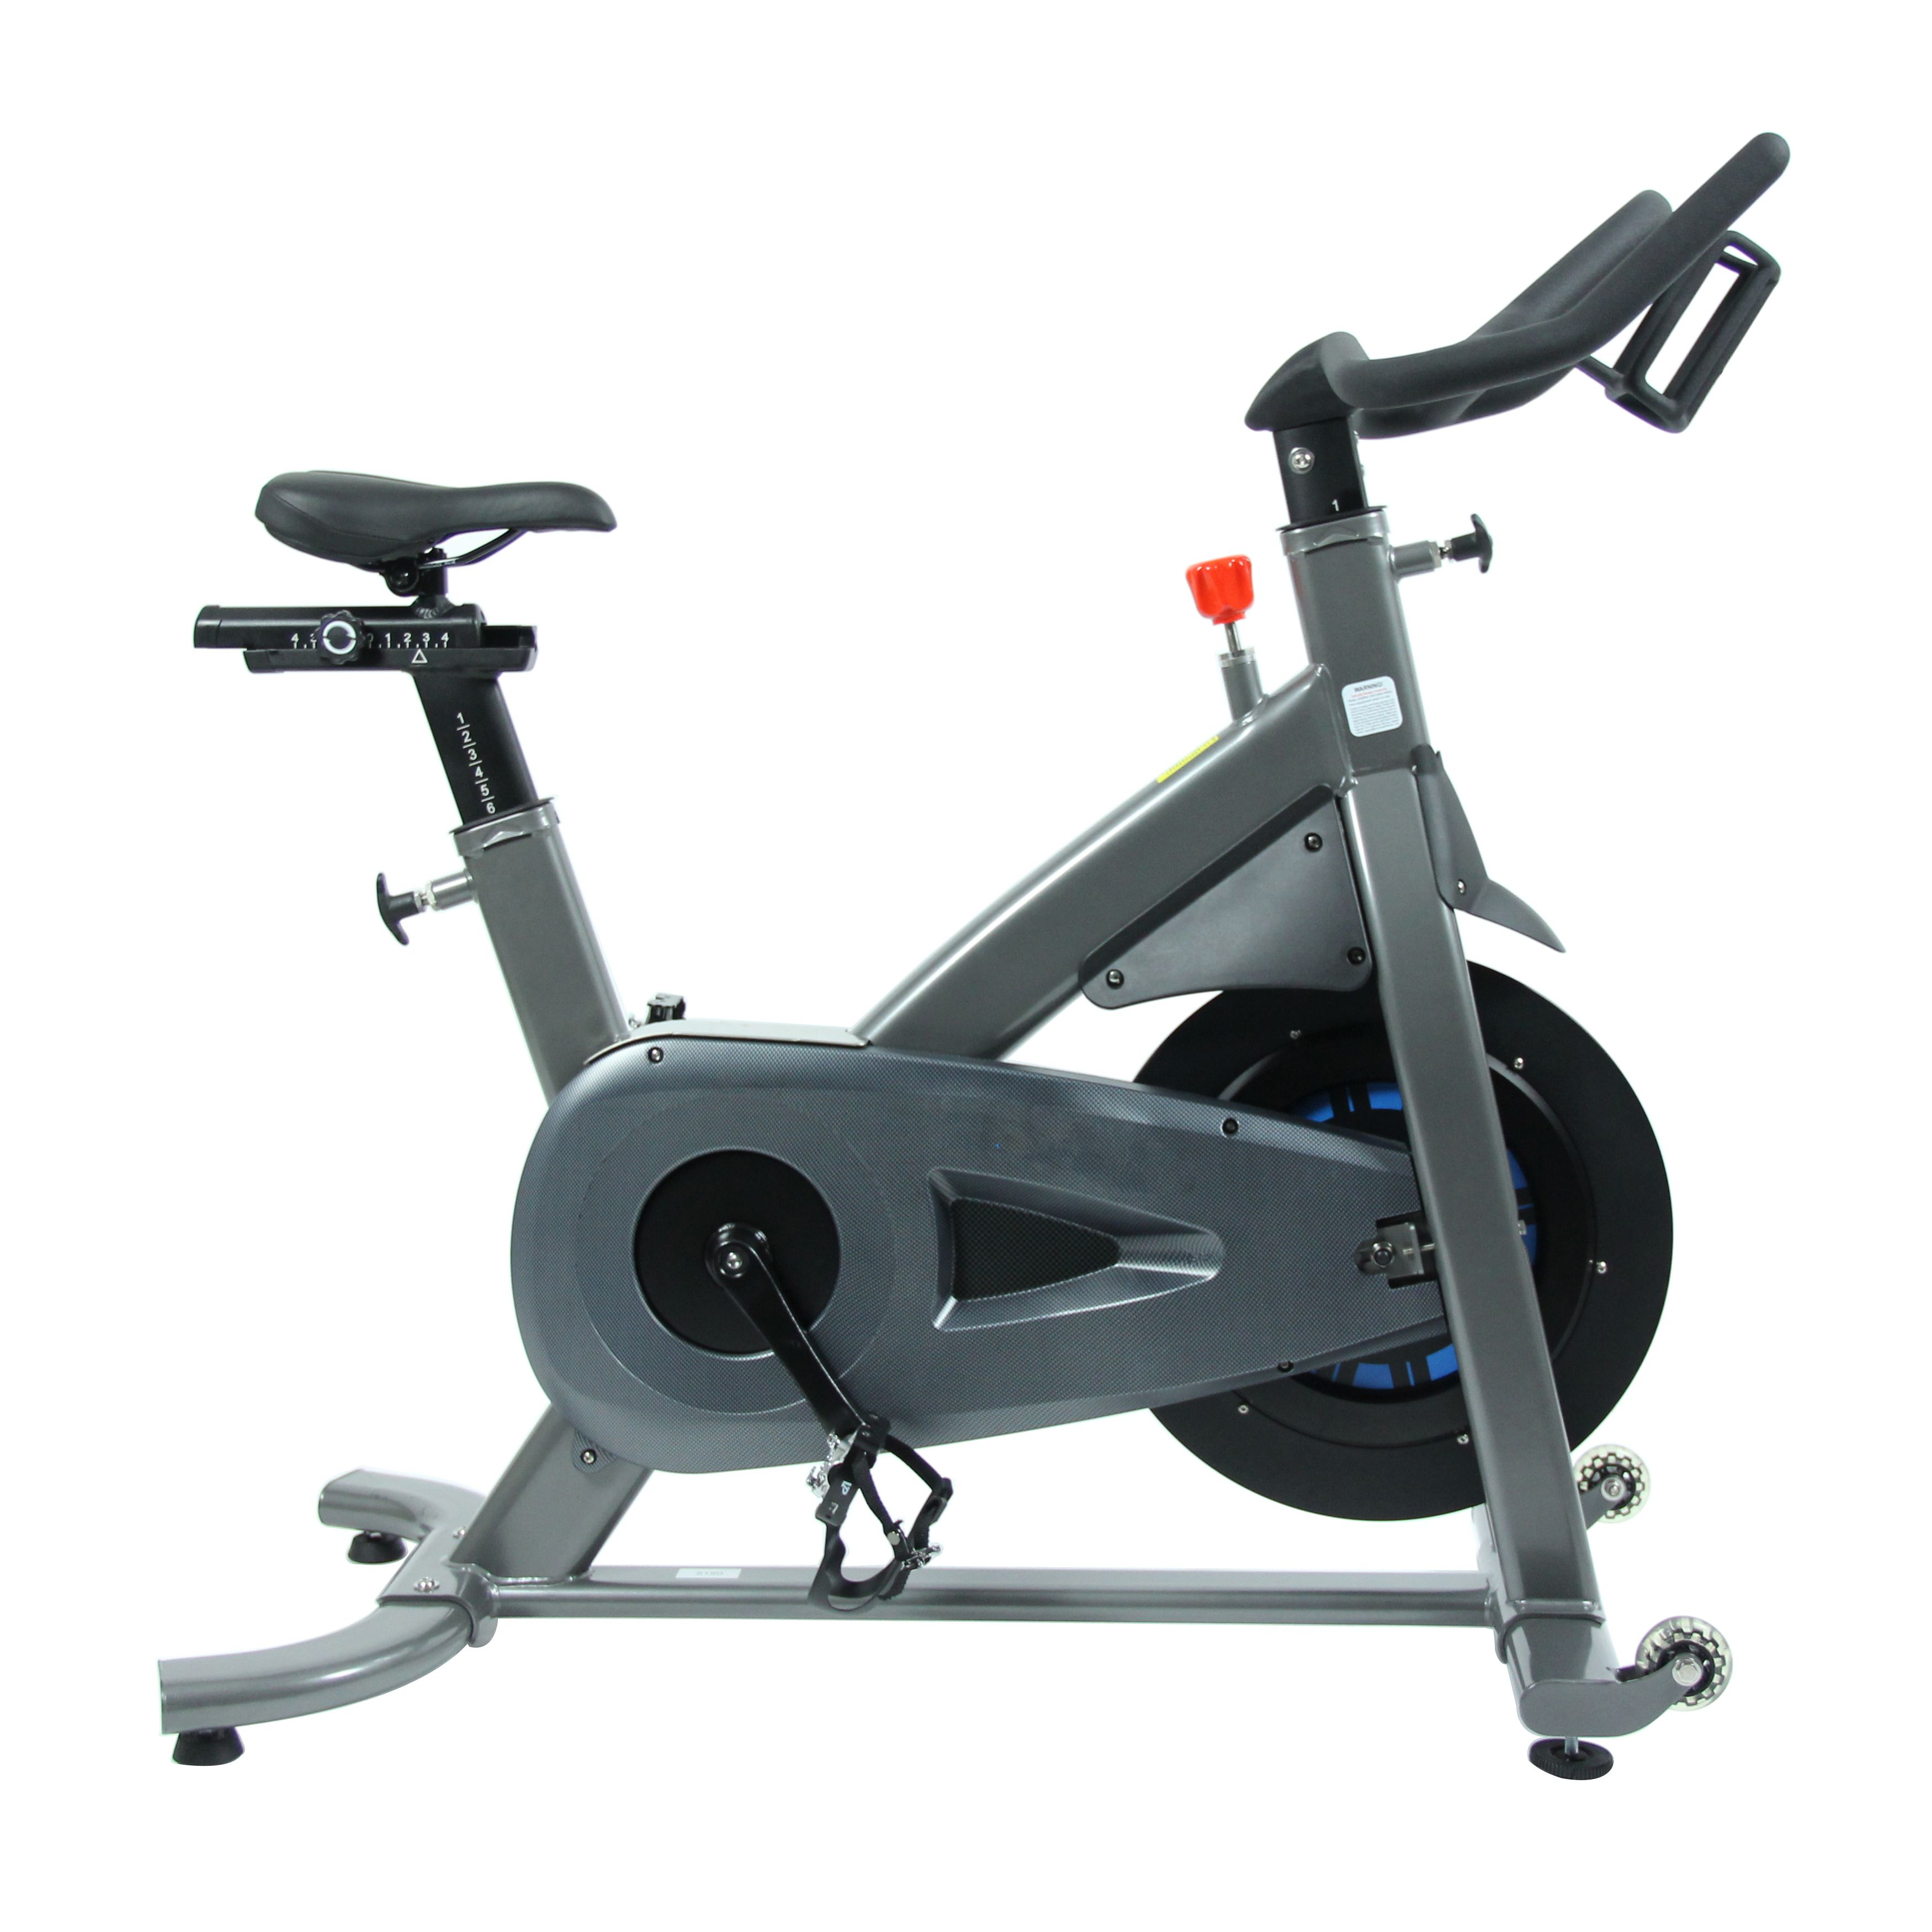 Top Best Best Exercise Bike Brand In India Brand And Top